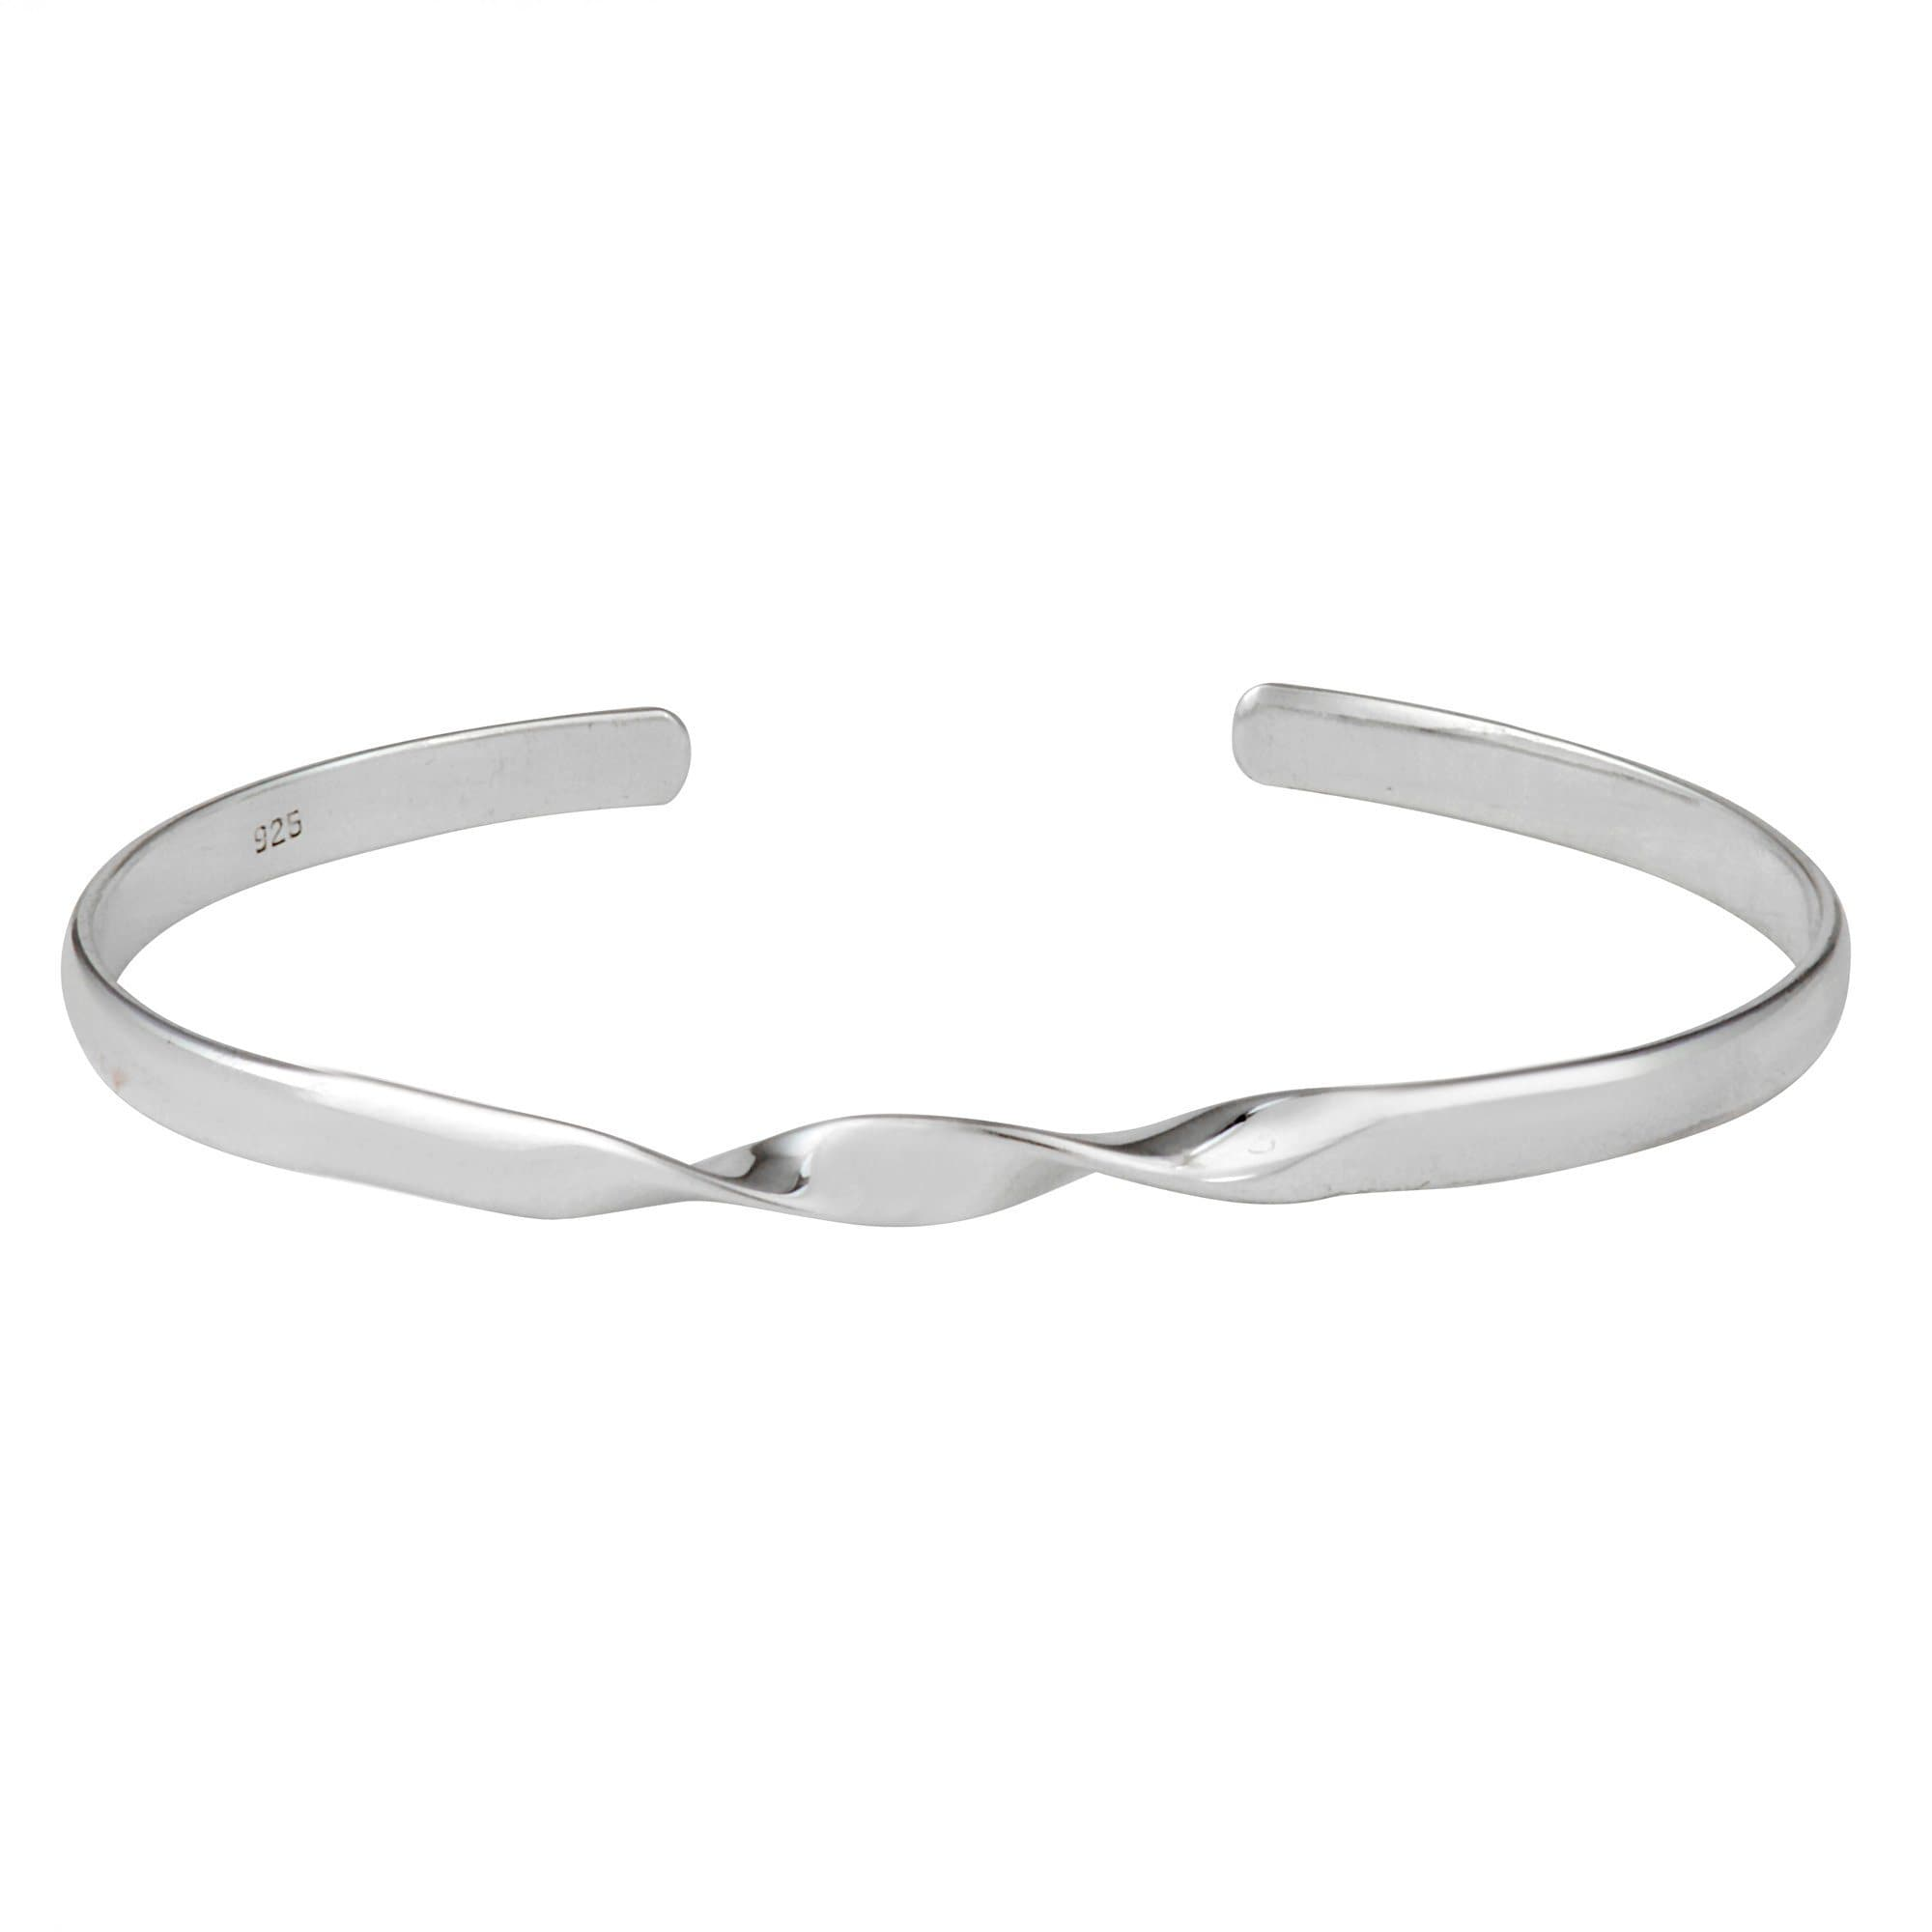 silver bangle pin thick for sterling bracelet her beautiful and bracelets gifts elegant smooth oval plain bangles